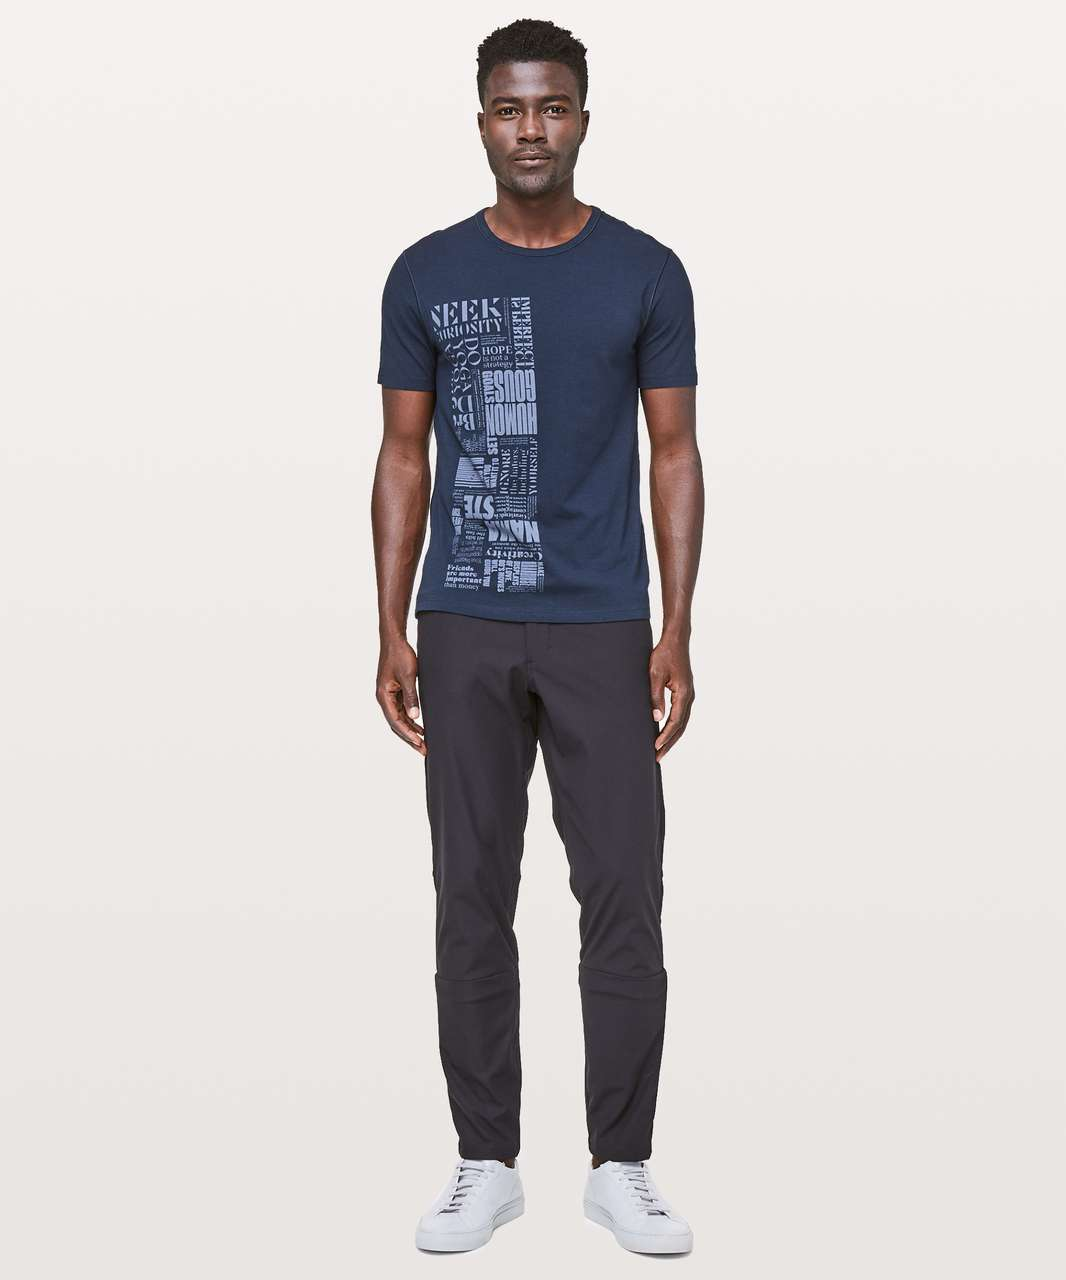 Lululemon 5 Year Basic T *20Y Collection - True Navy (First Release)